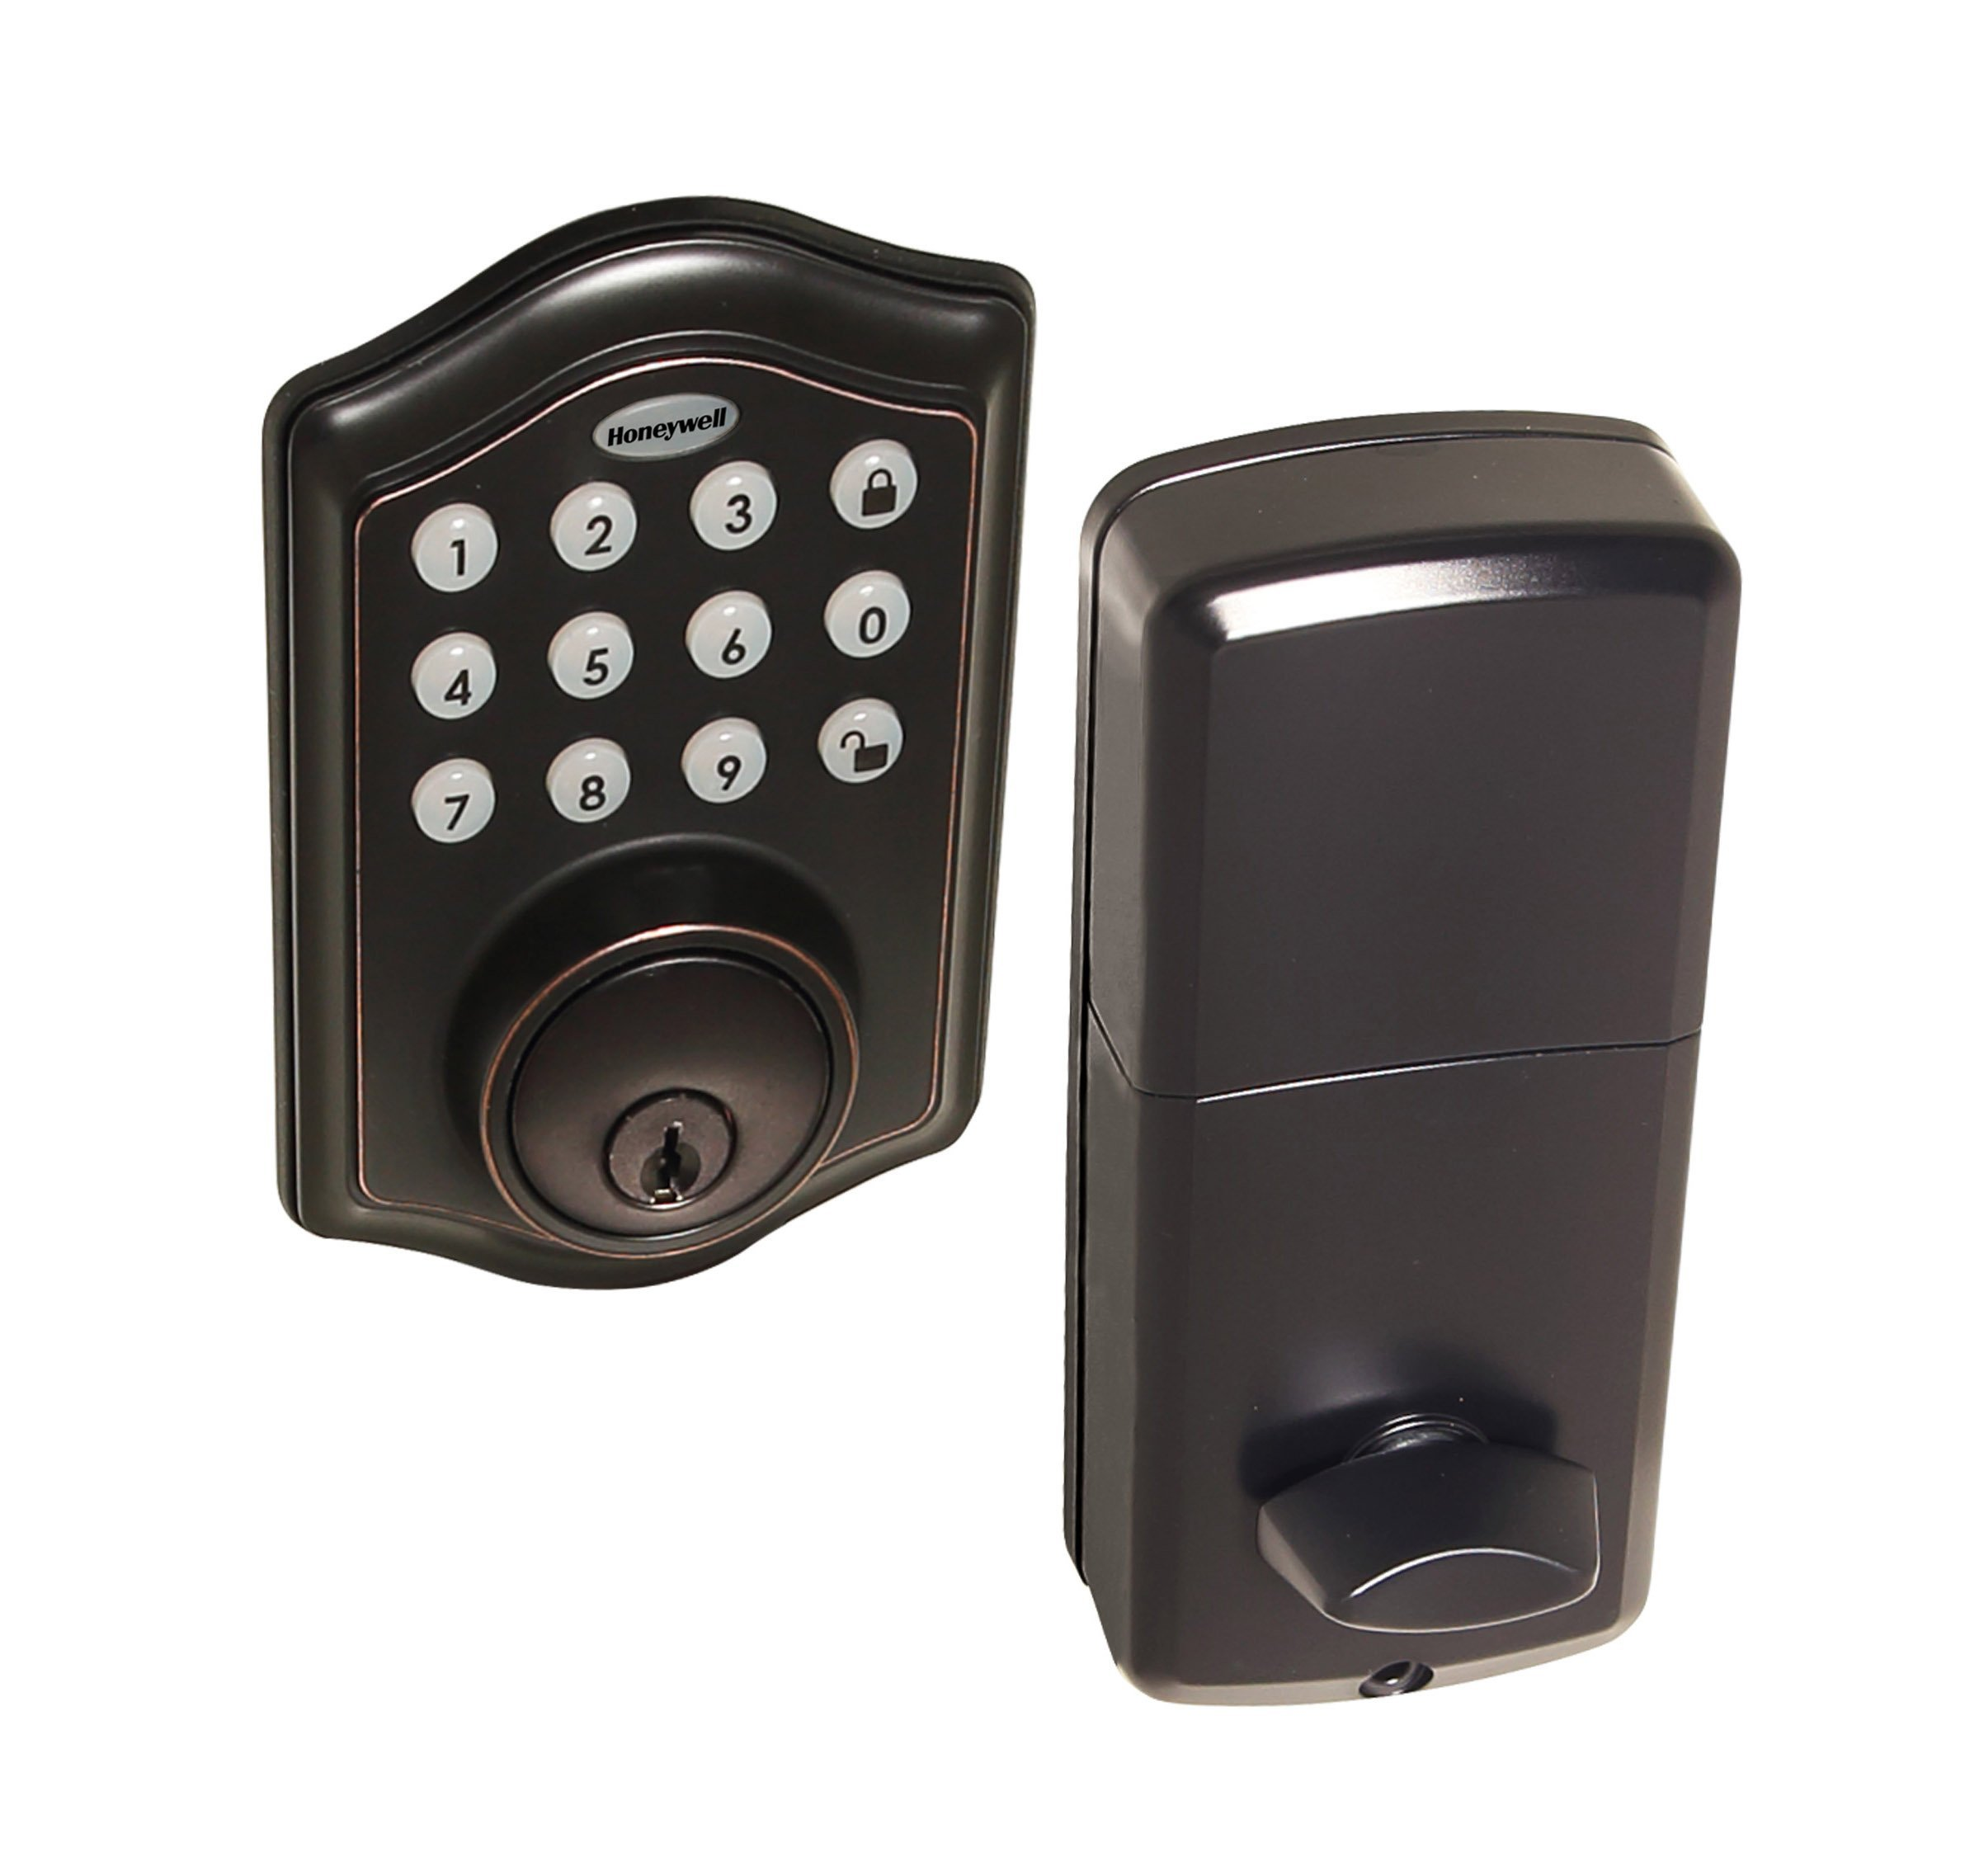 HONEYWELL - 8712409 Electronic Entry Deadbolt with Keypad, Oil Rubbed Bronze